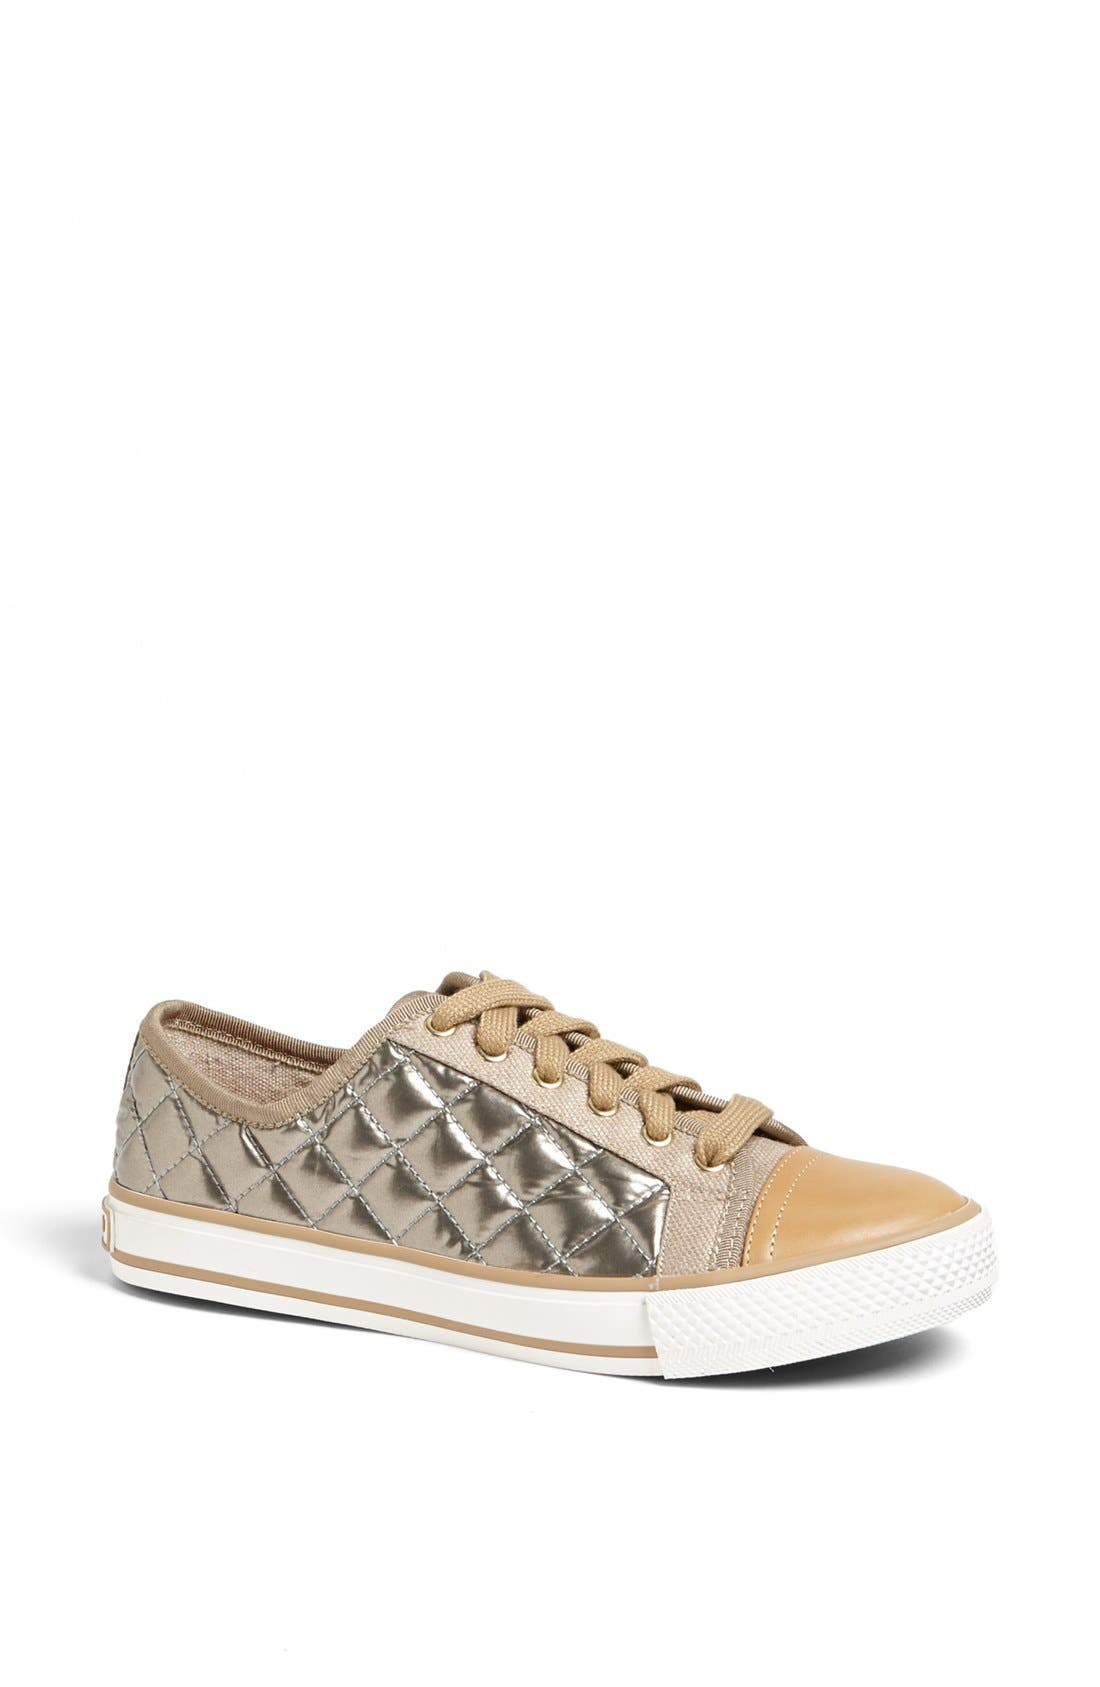 Alternate Image 1 Selected - Tory Burch 'Caspe' Quilted Metallic Leather Sneaker